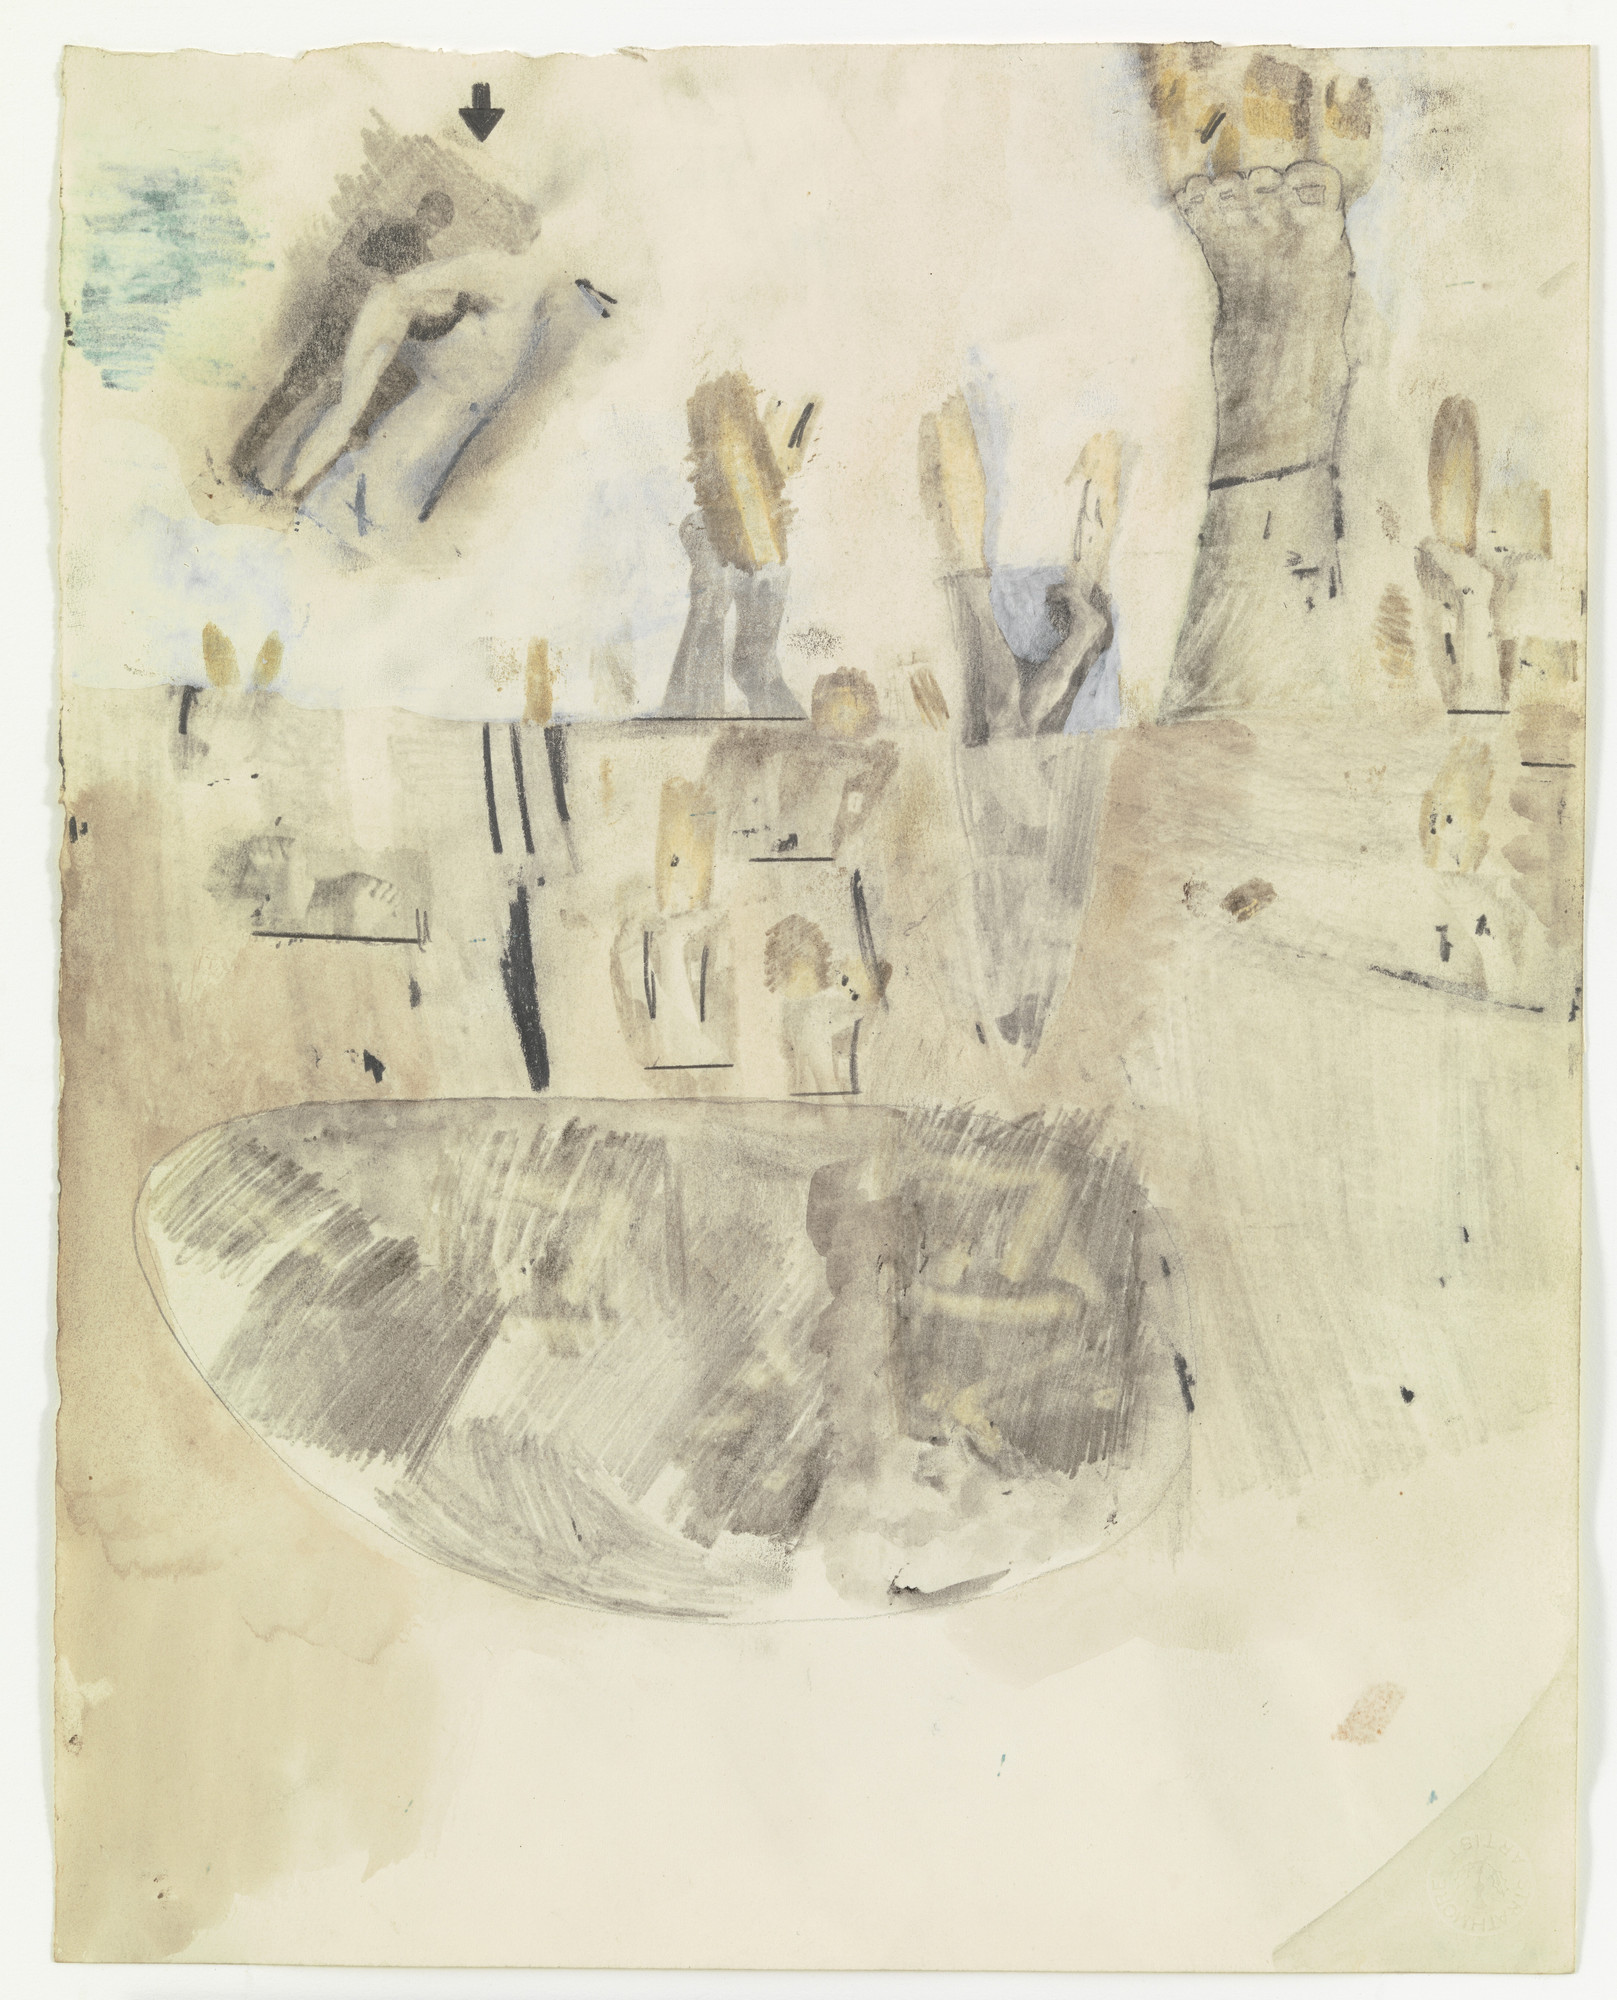 Robert Rauschenberg. Canto XIX: Circle Eight, Bolgia 3, The Simoniacs from the series Thirty-Four Illustrations for Dante's Inferno. (1959-60)